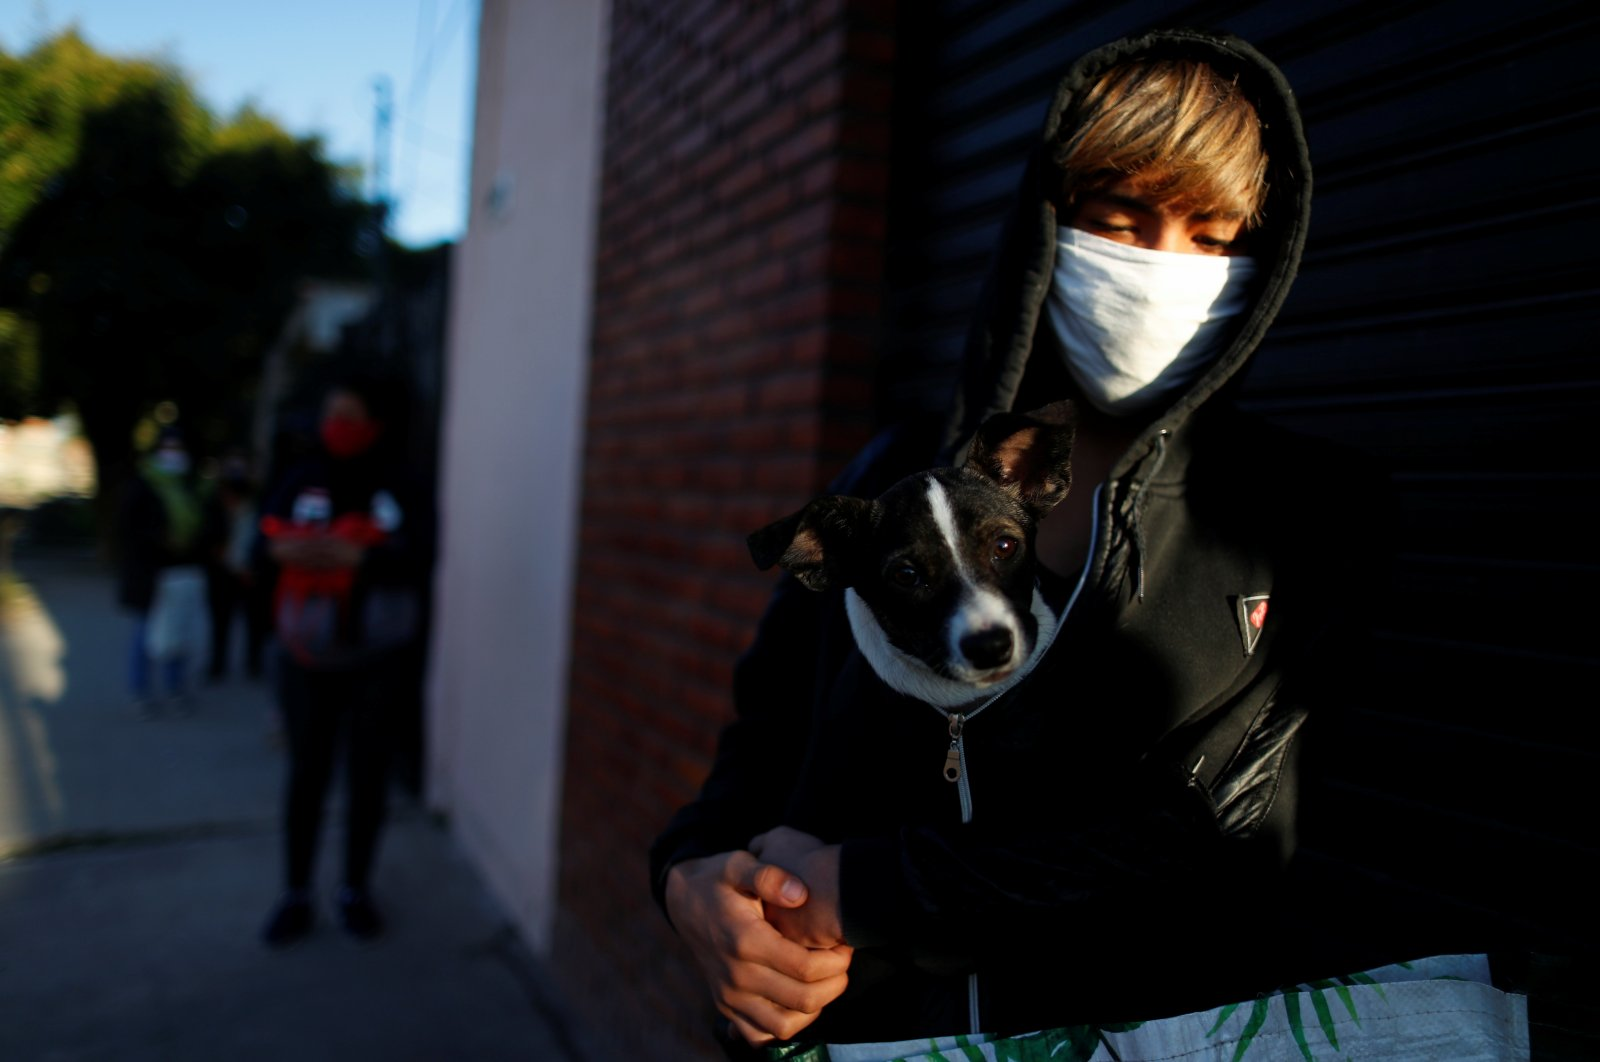 A boy holds his dog as he waits in line to receive a ration of stew at a soup kitchen during the COVID-19 outbreak, in Buenos Aires, Argentina, July 14, 2020. (Reuters Photo)